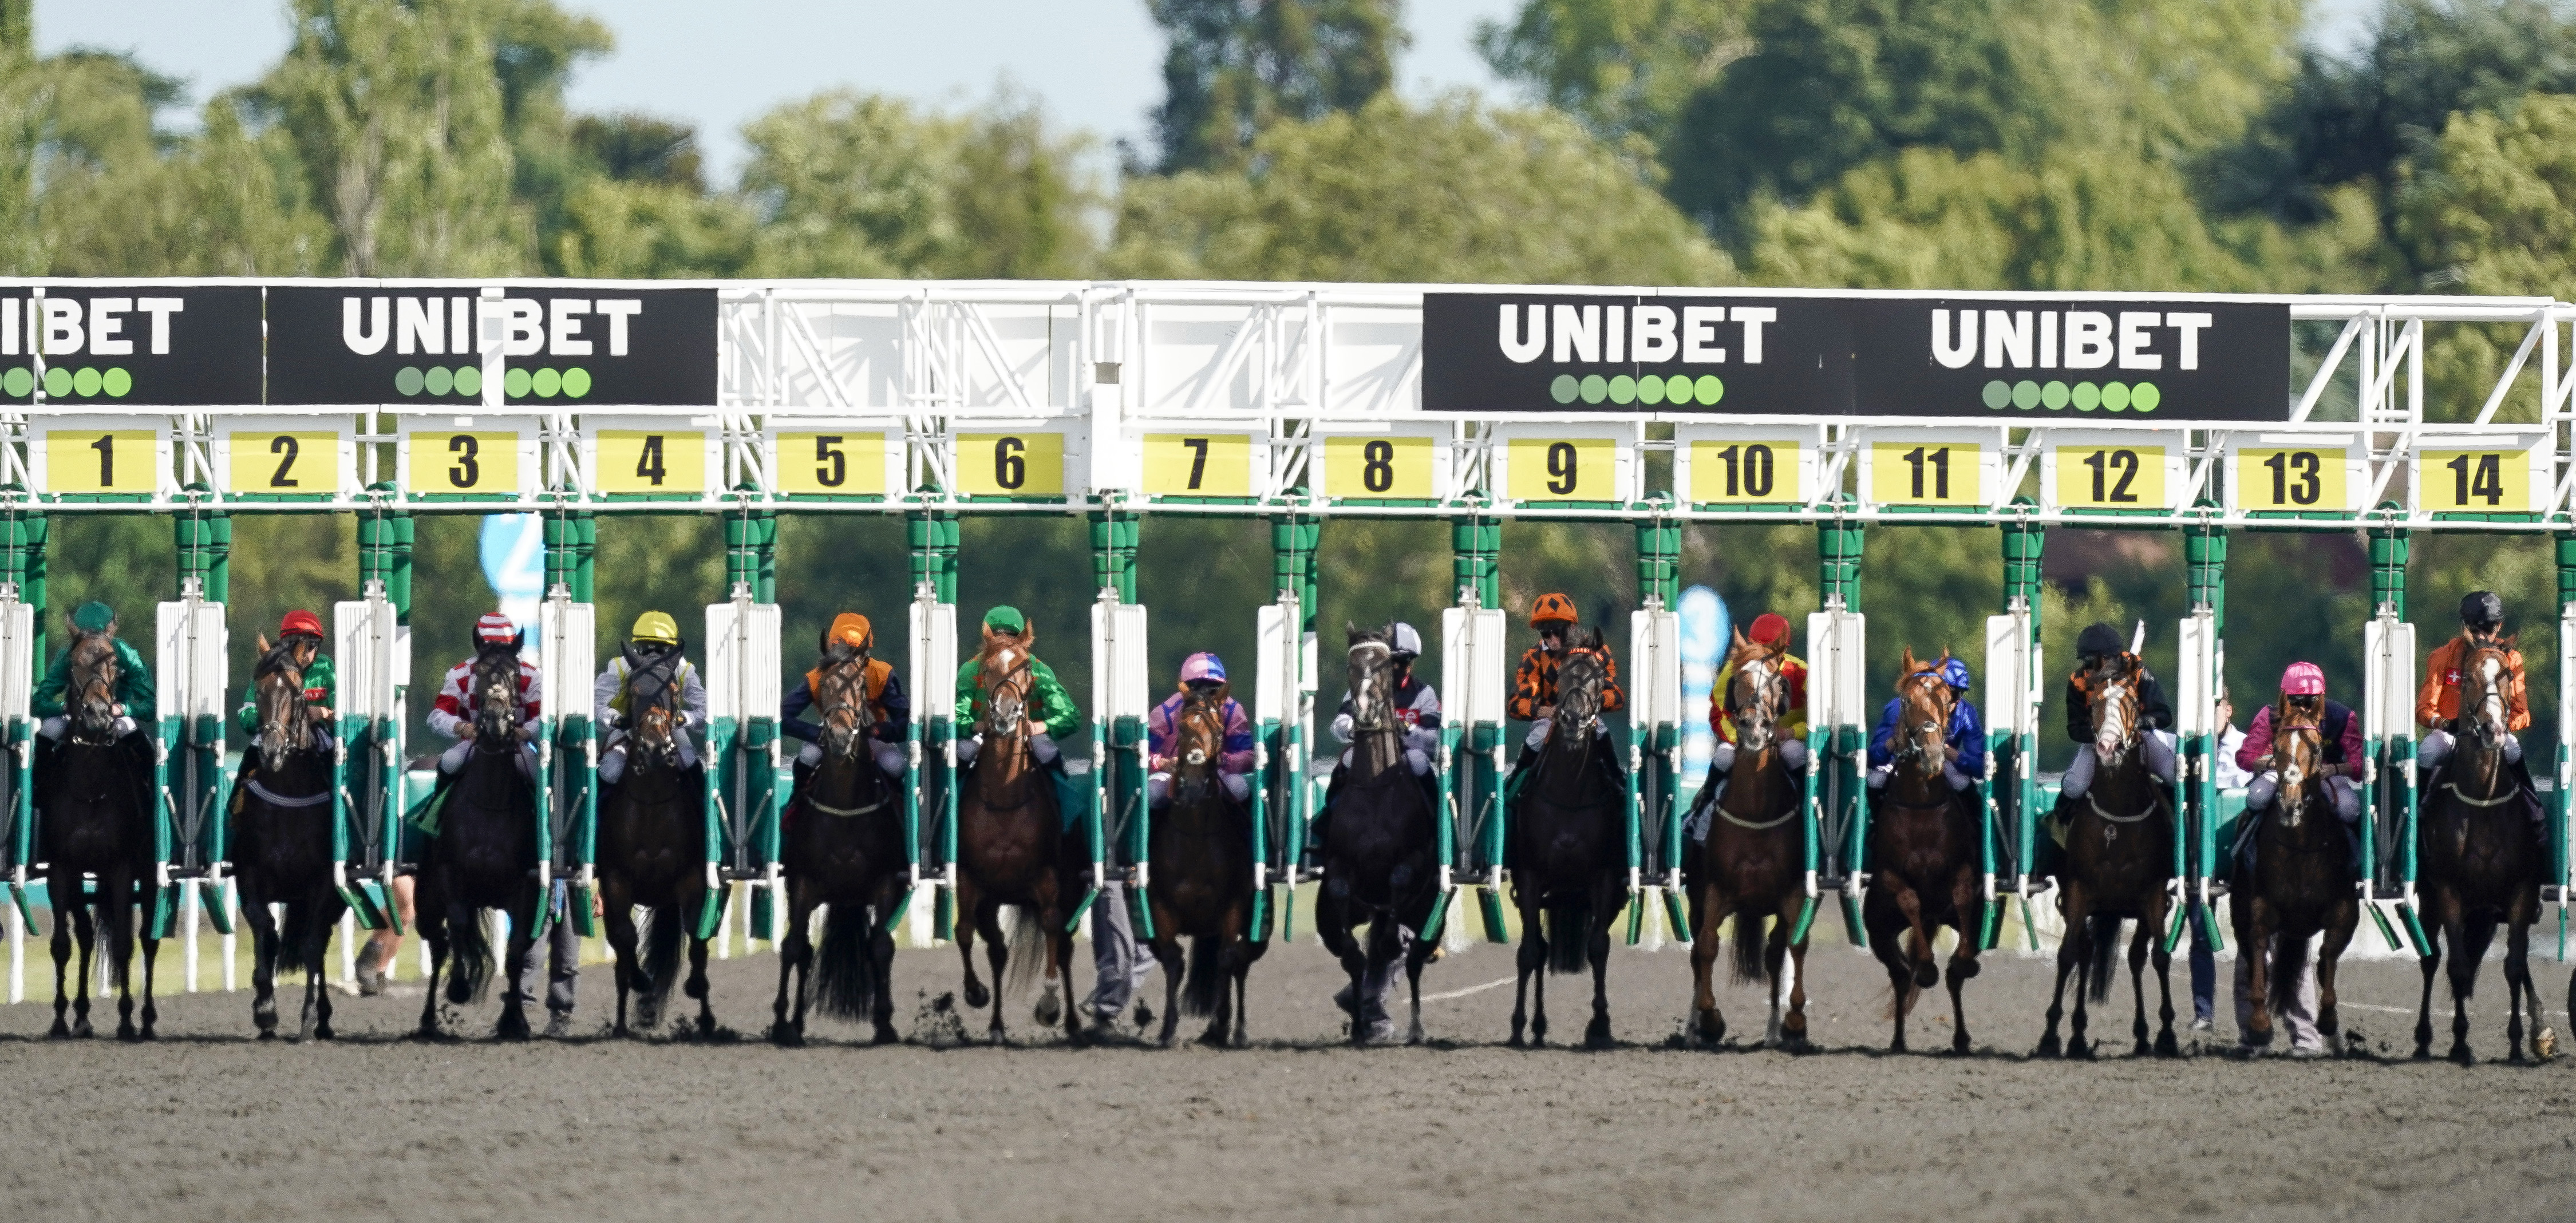 SUNBURY, ENGLAND - JULY 13: Runners in The Unibet Thanks The Frontline Workers Handicapn exit the starting stalls at Kempton Park on July 13, 2020 in Sunbury, England. Owners are allowed to attend if they have a runner at the meeting otherwise racing remains behind closed doors to the public due to the Coronavirus pandemic. (Photo by Alan Crowhurst/Getty Images)